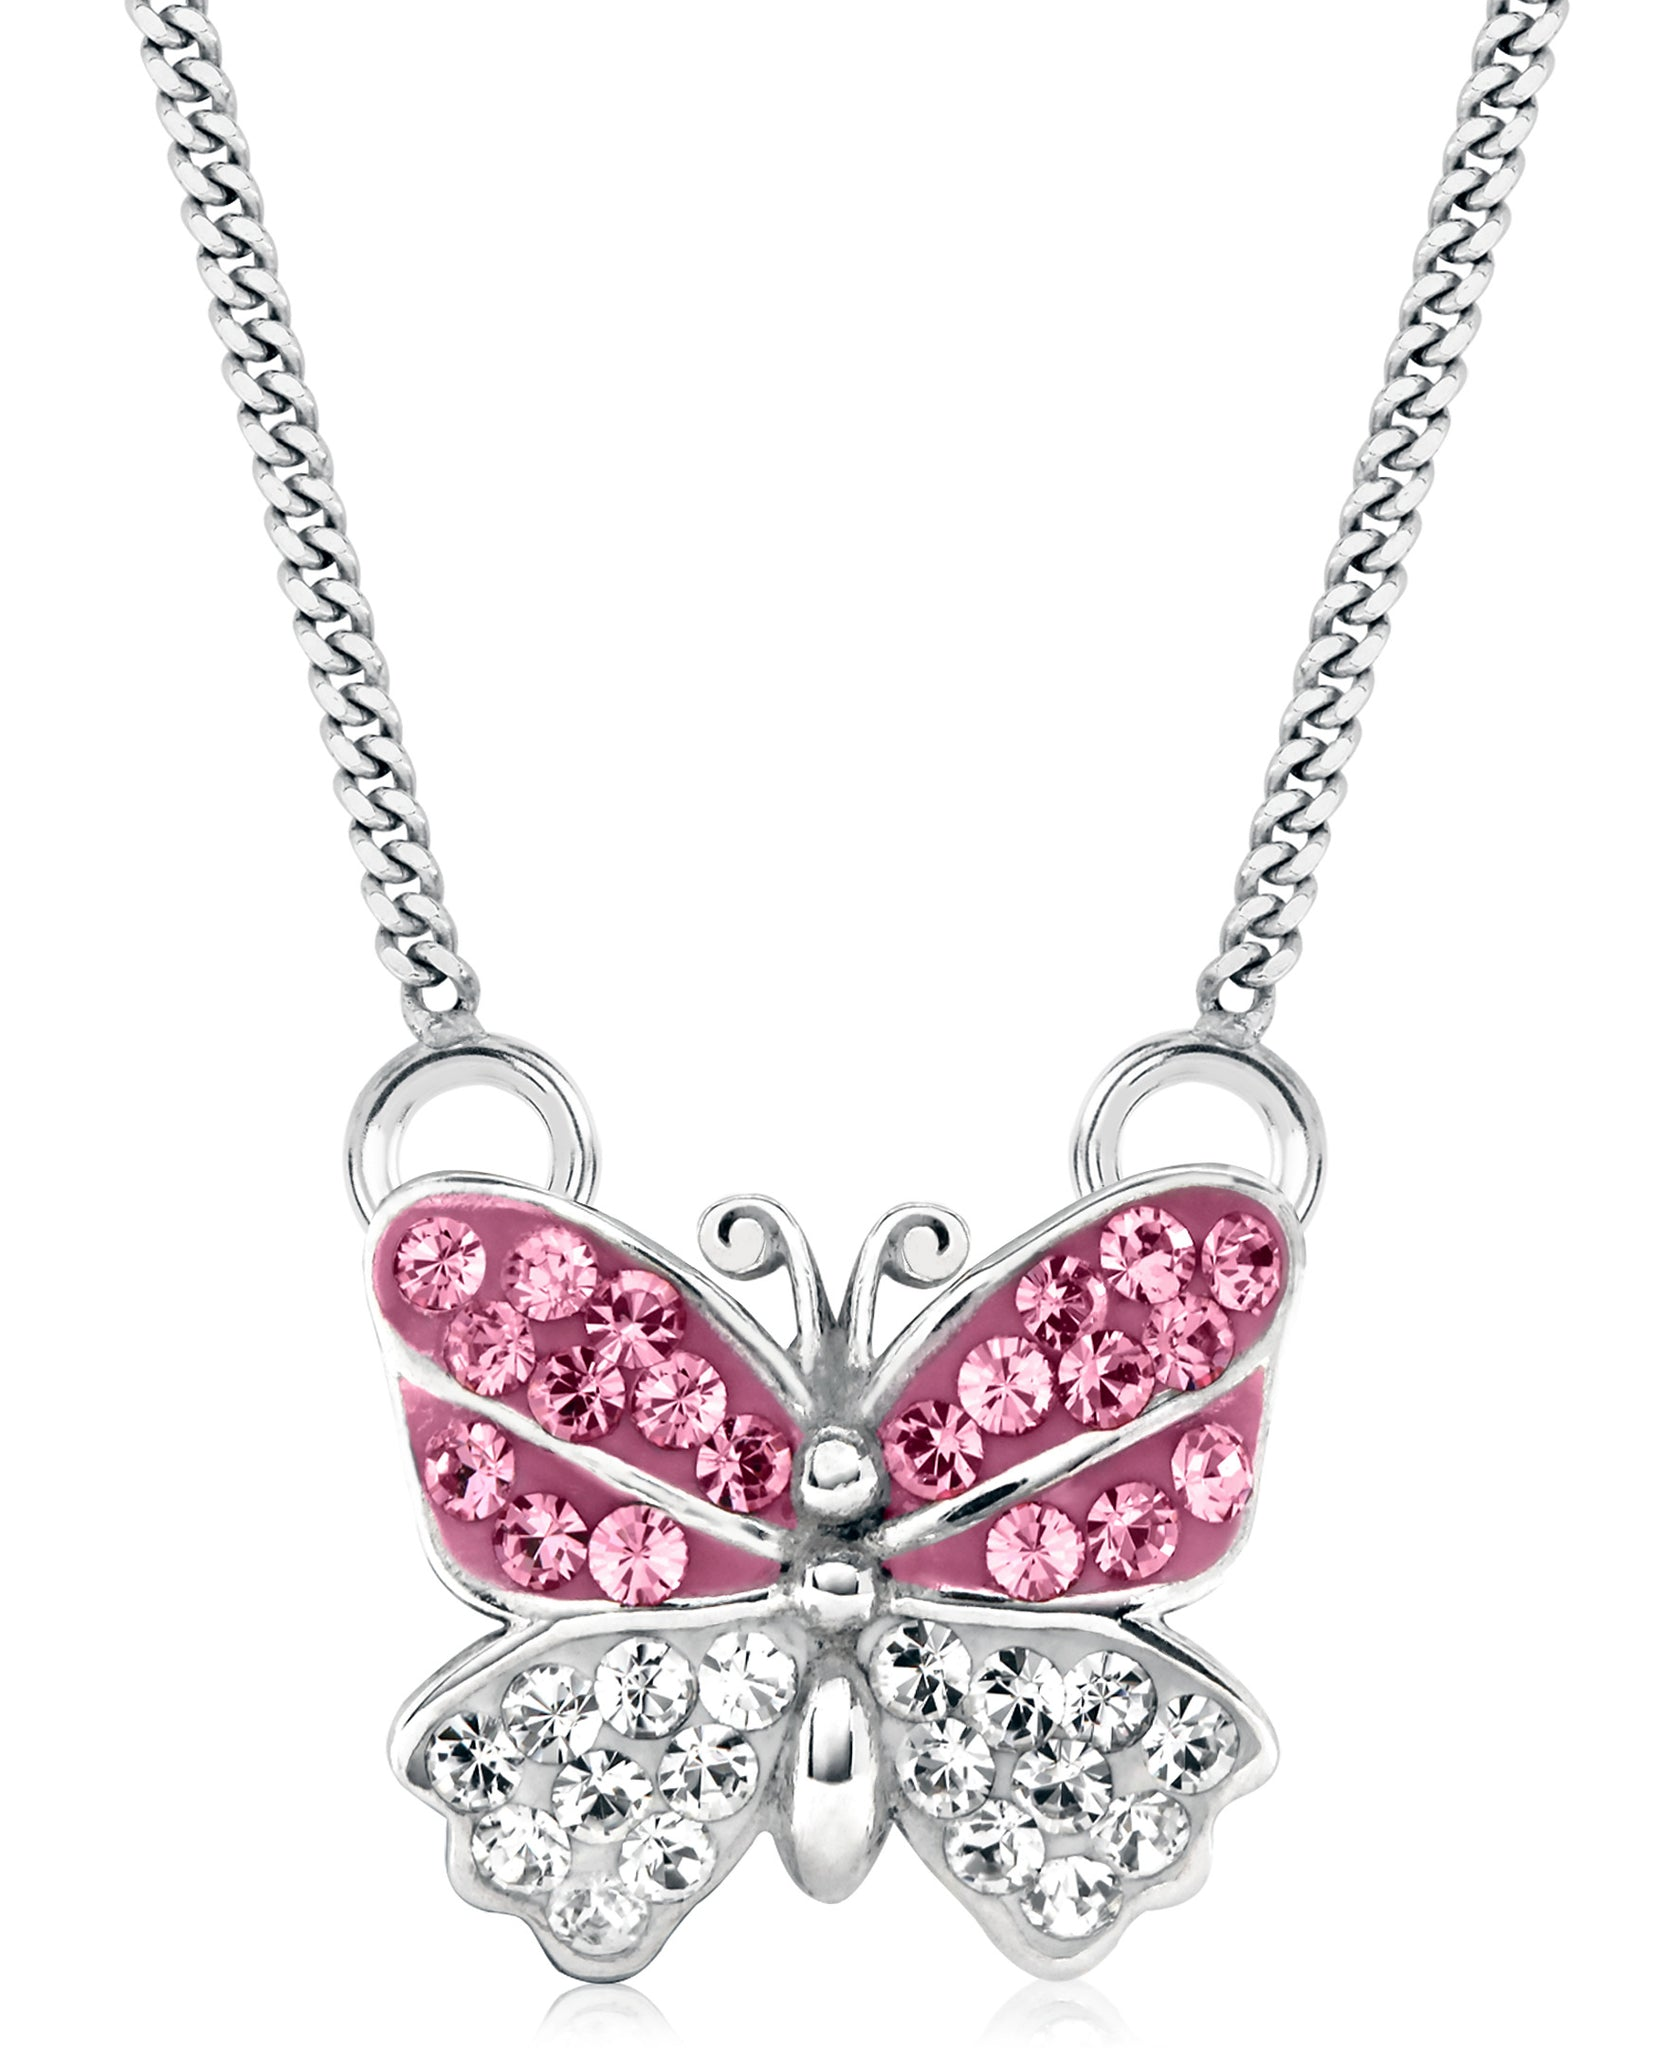 Children's Sterling Silver Crystal Butterfly Pendant Necklace - Rhona Sutton Jewellery